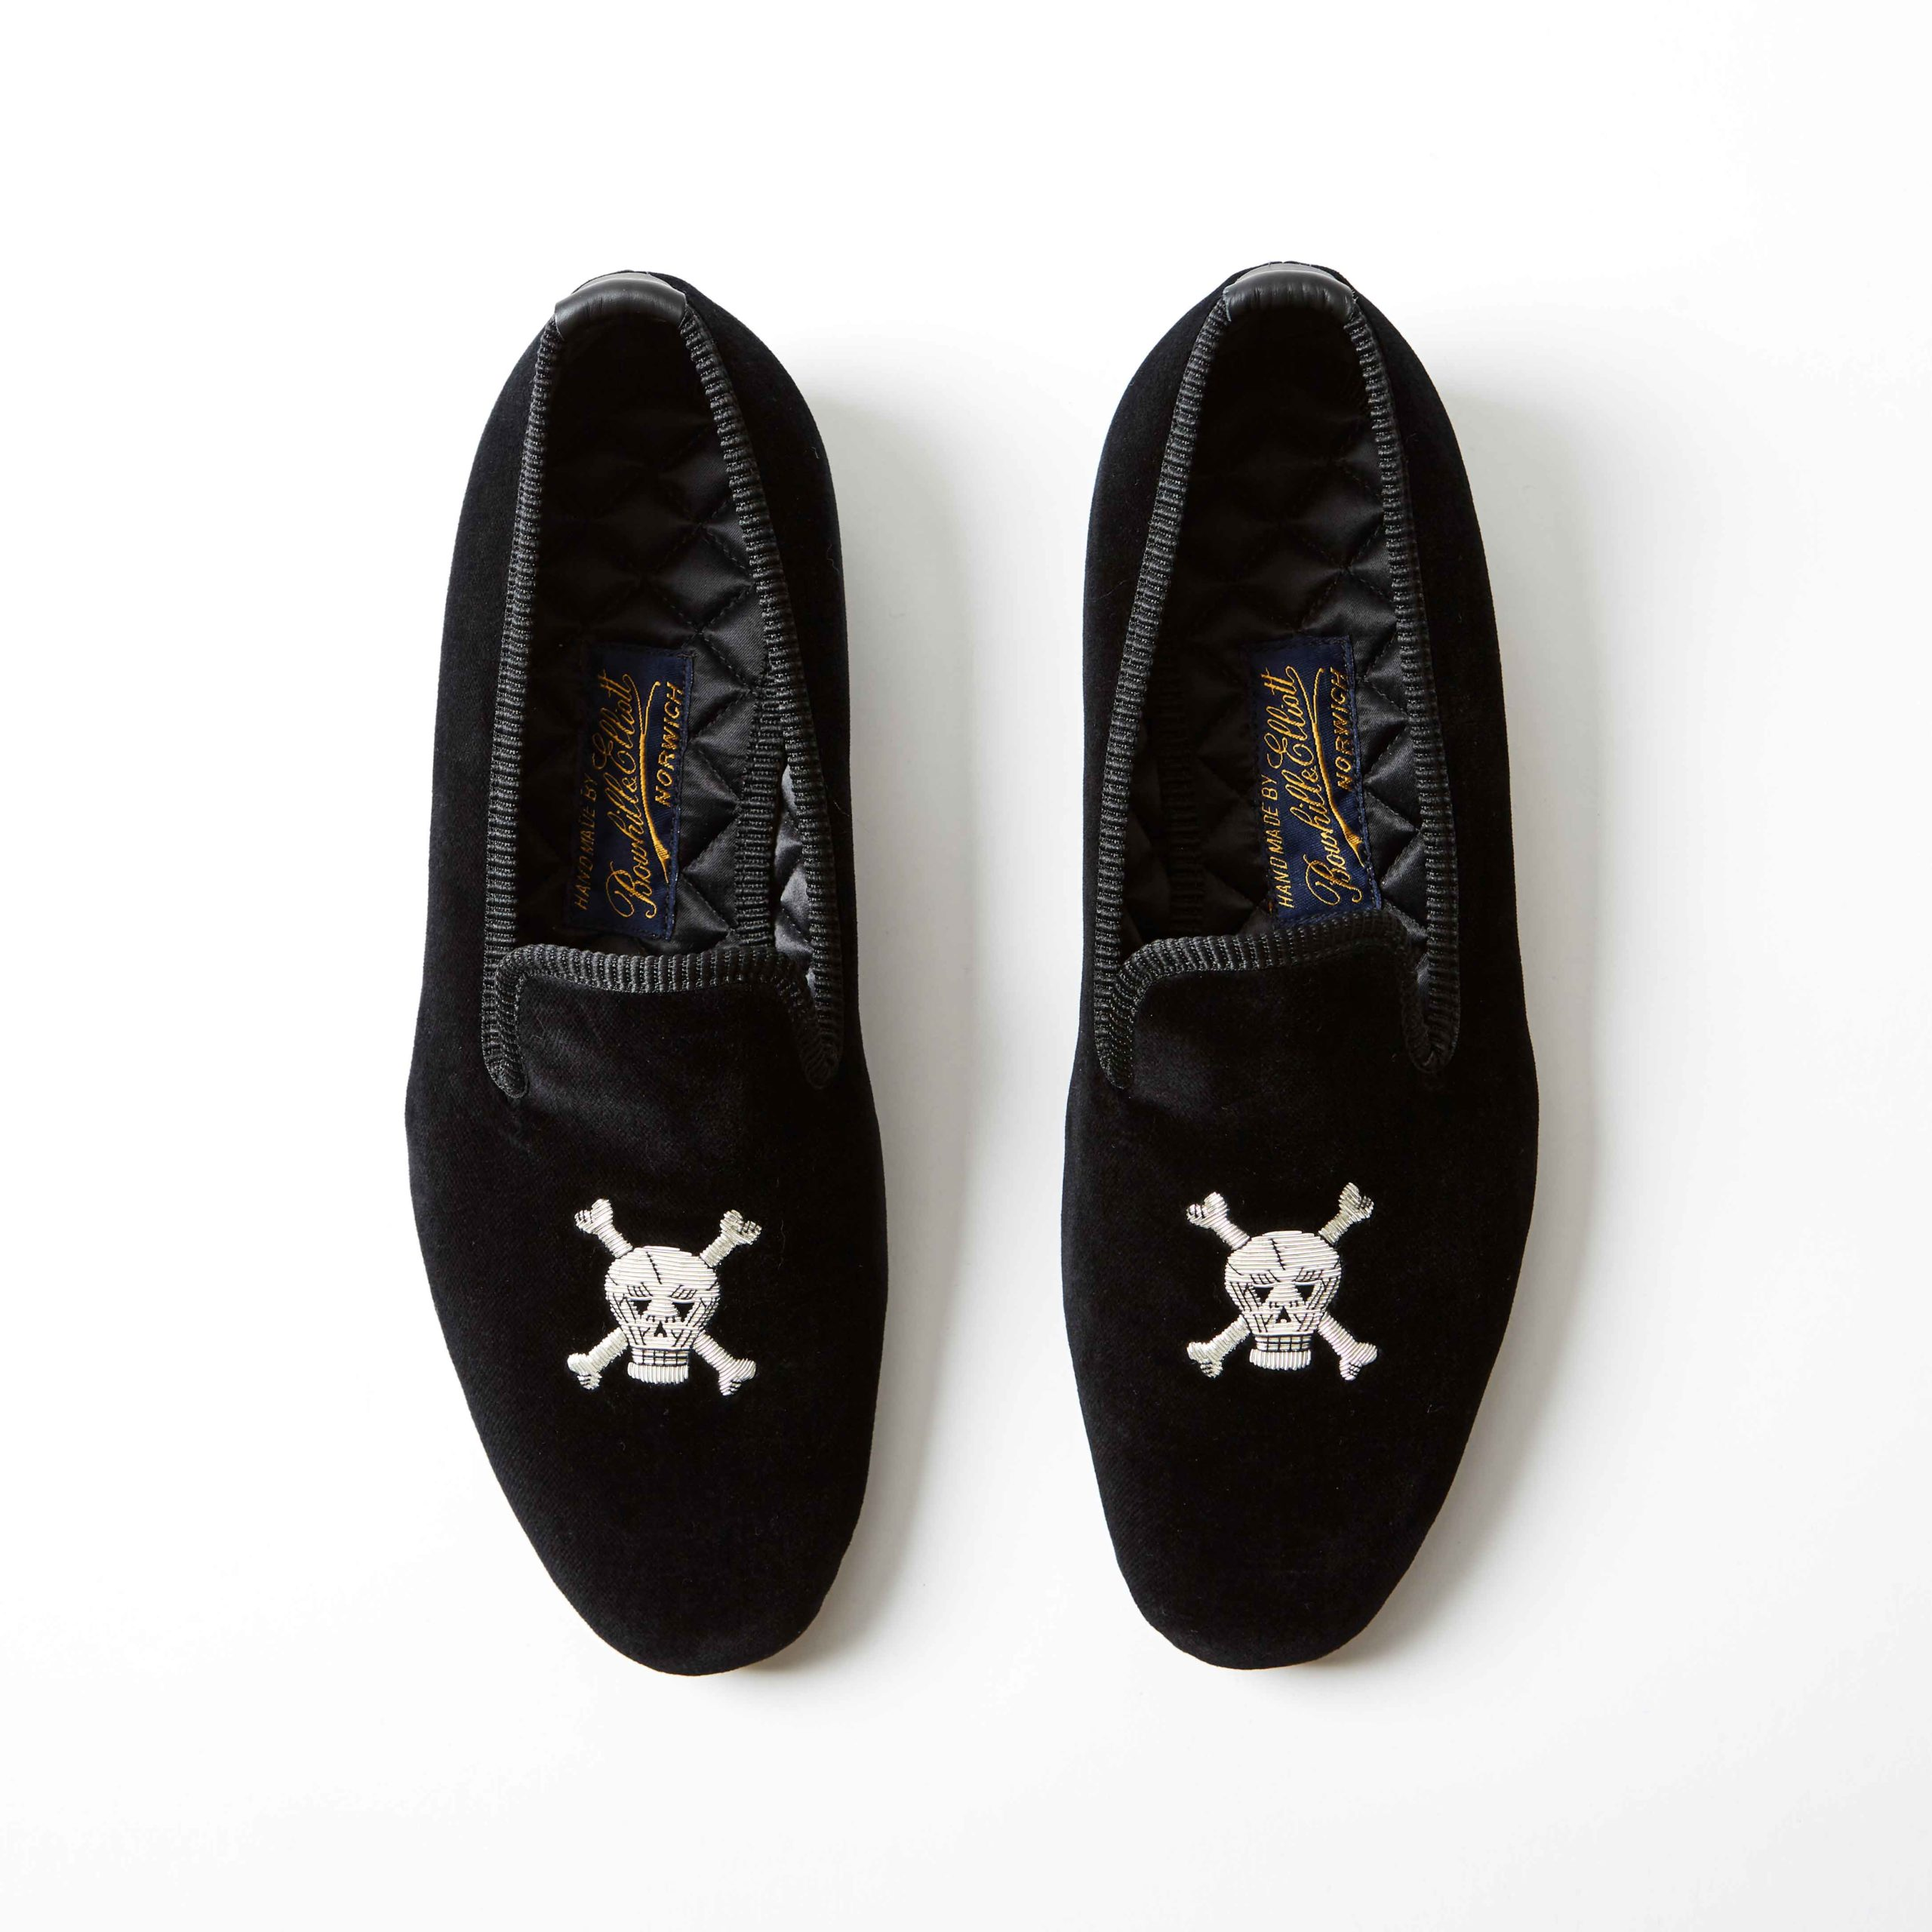 Bowhill and Elliott Black Velvet Albert Slippers with Skull and Crossbones 3